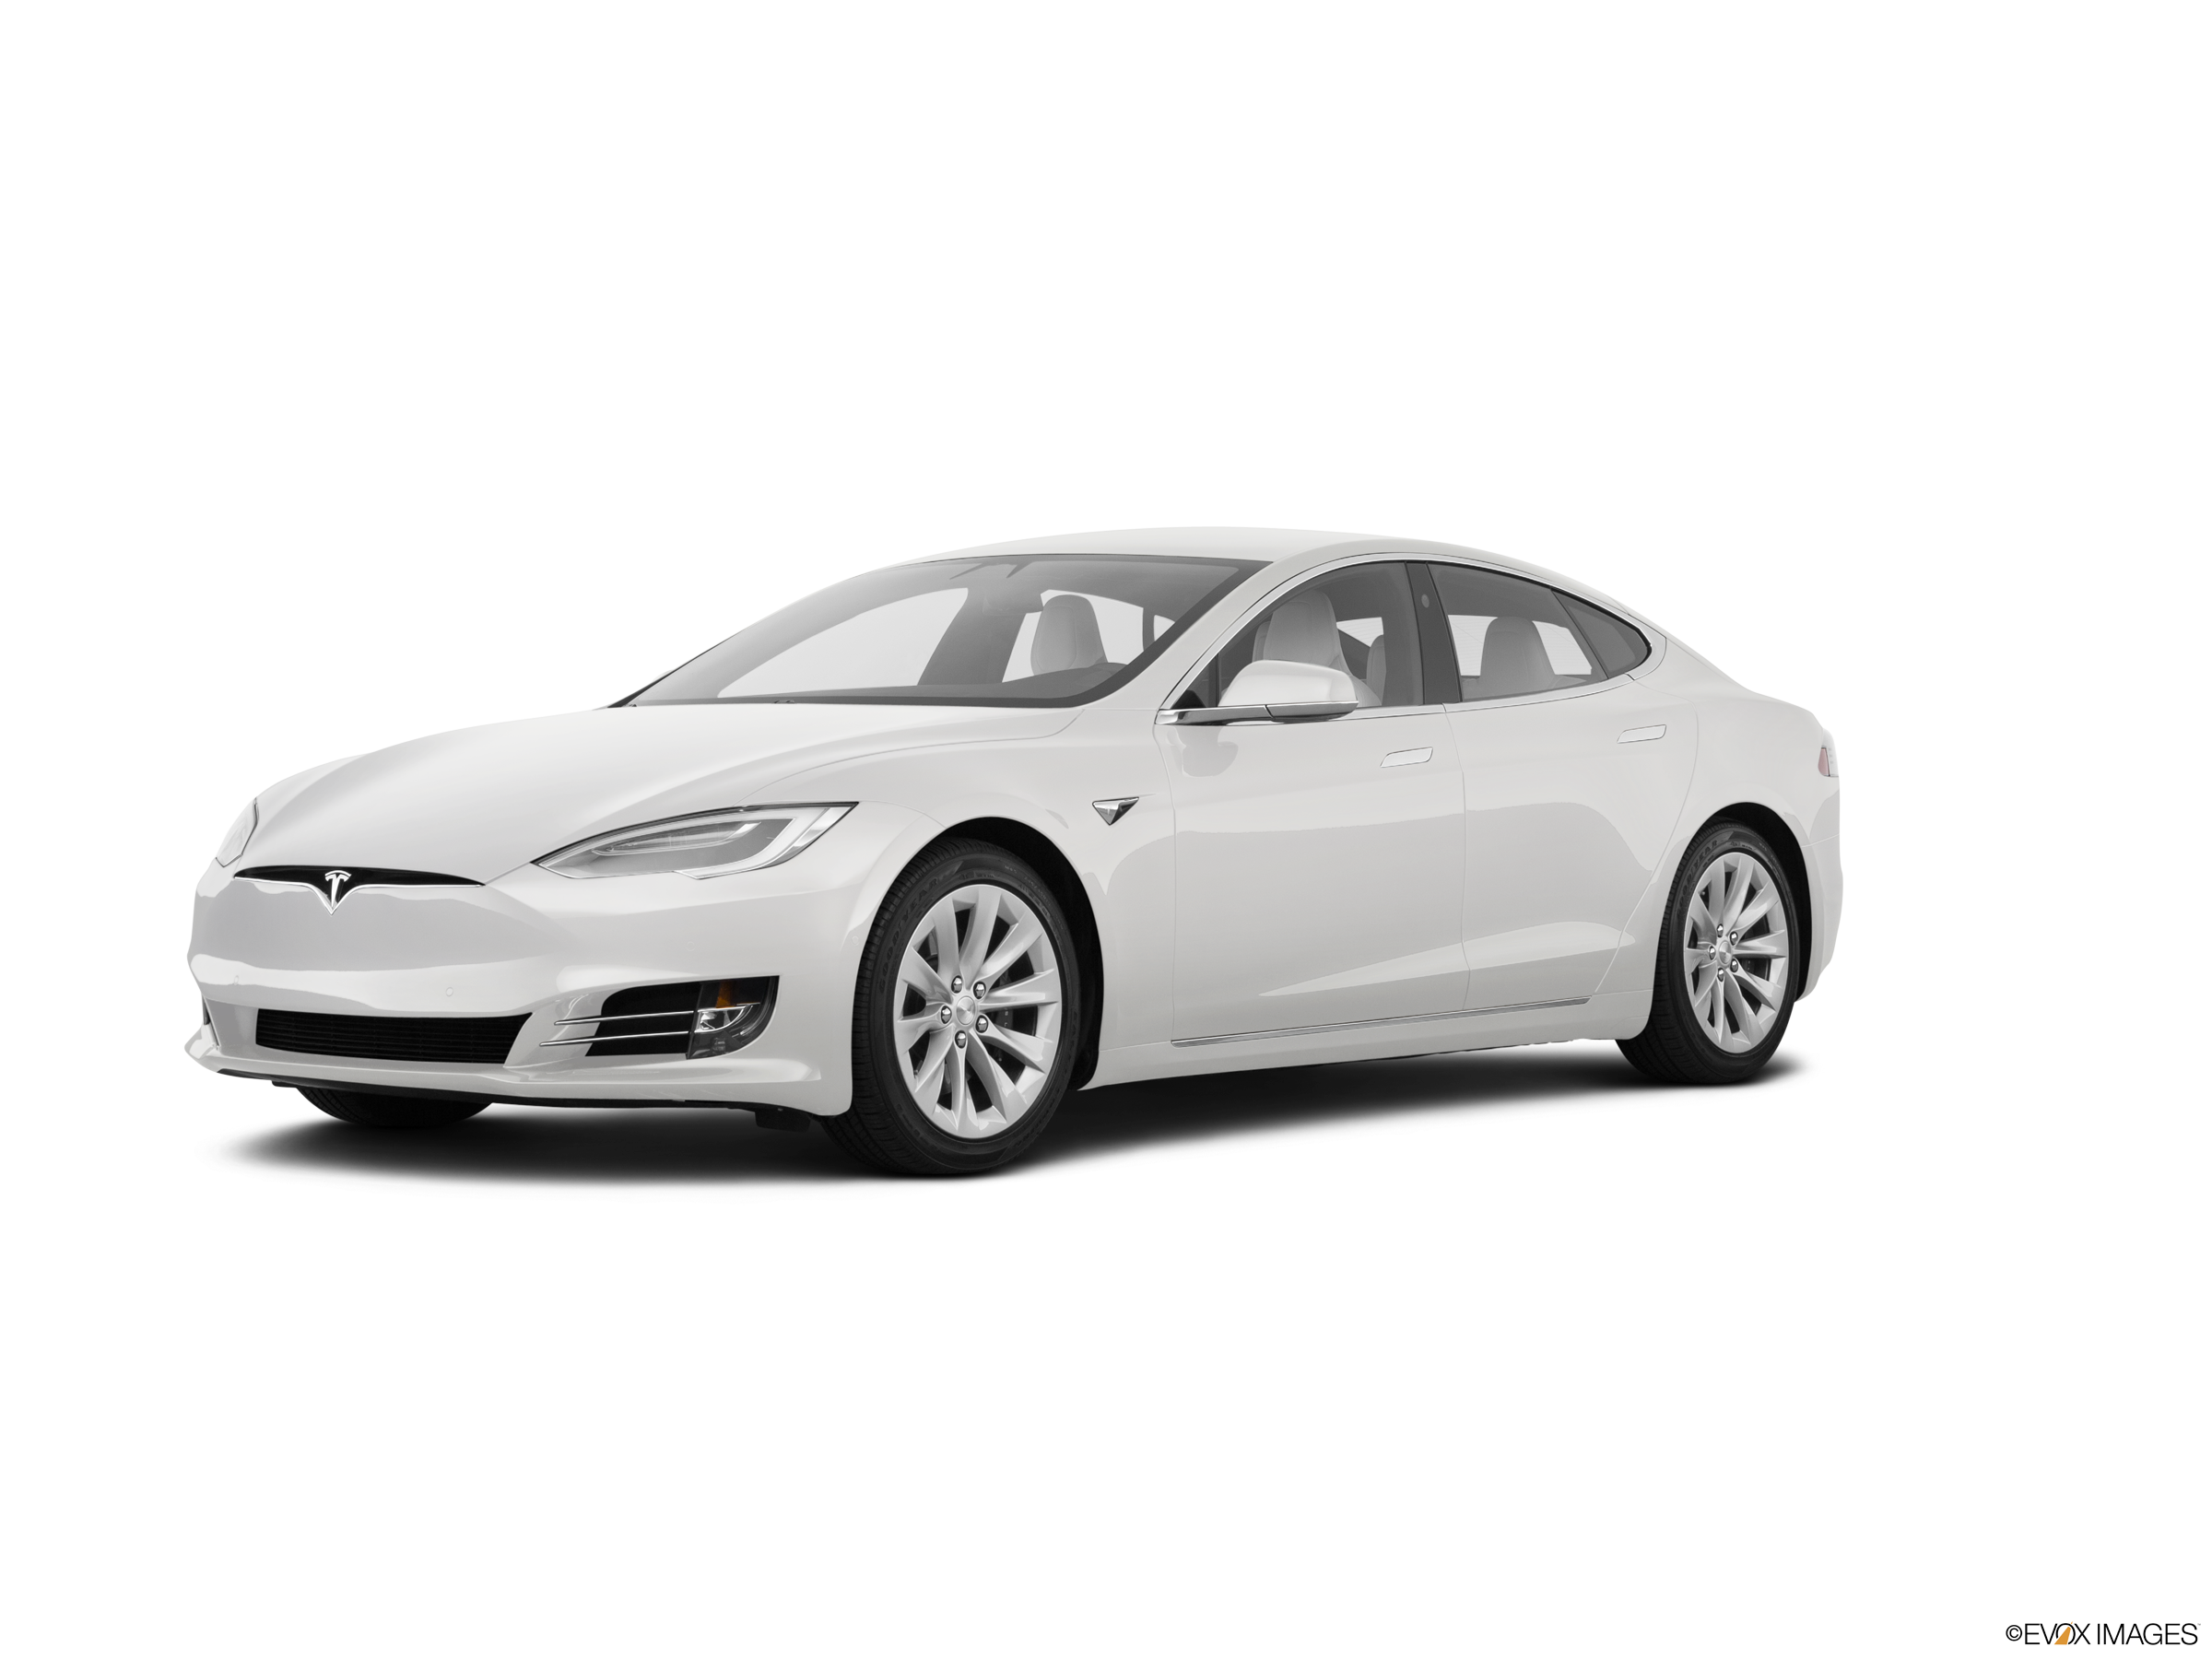 Most Popular Electric Cars of 2018 - 2018 Tesla Model S